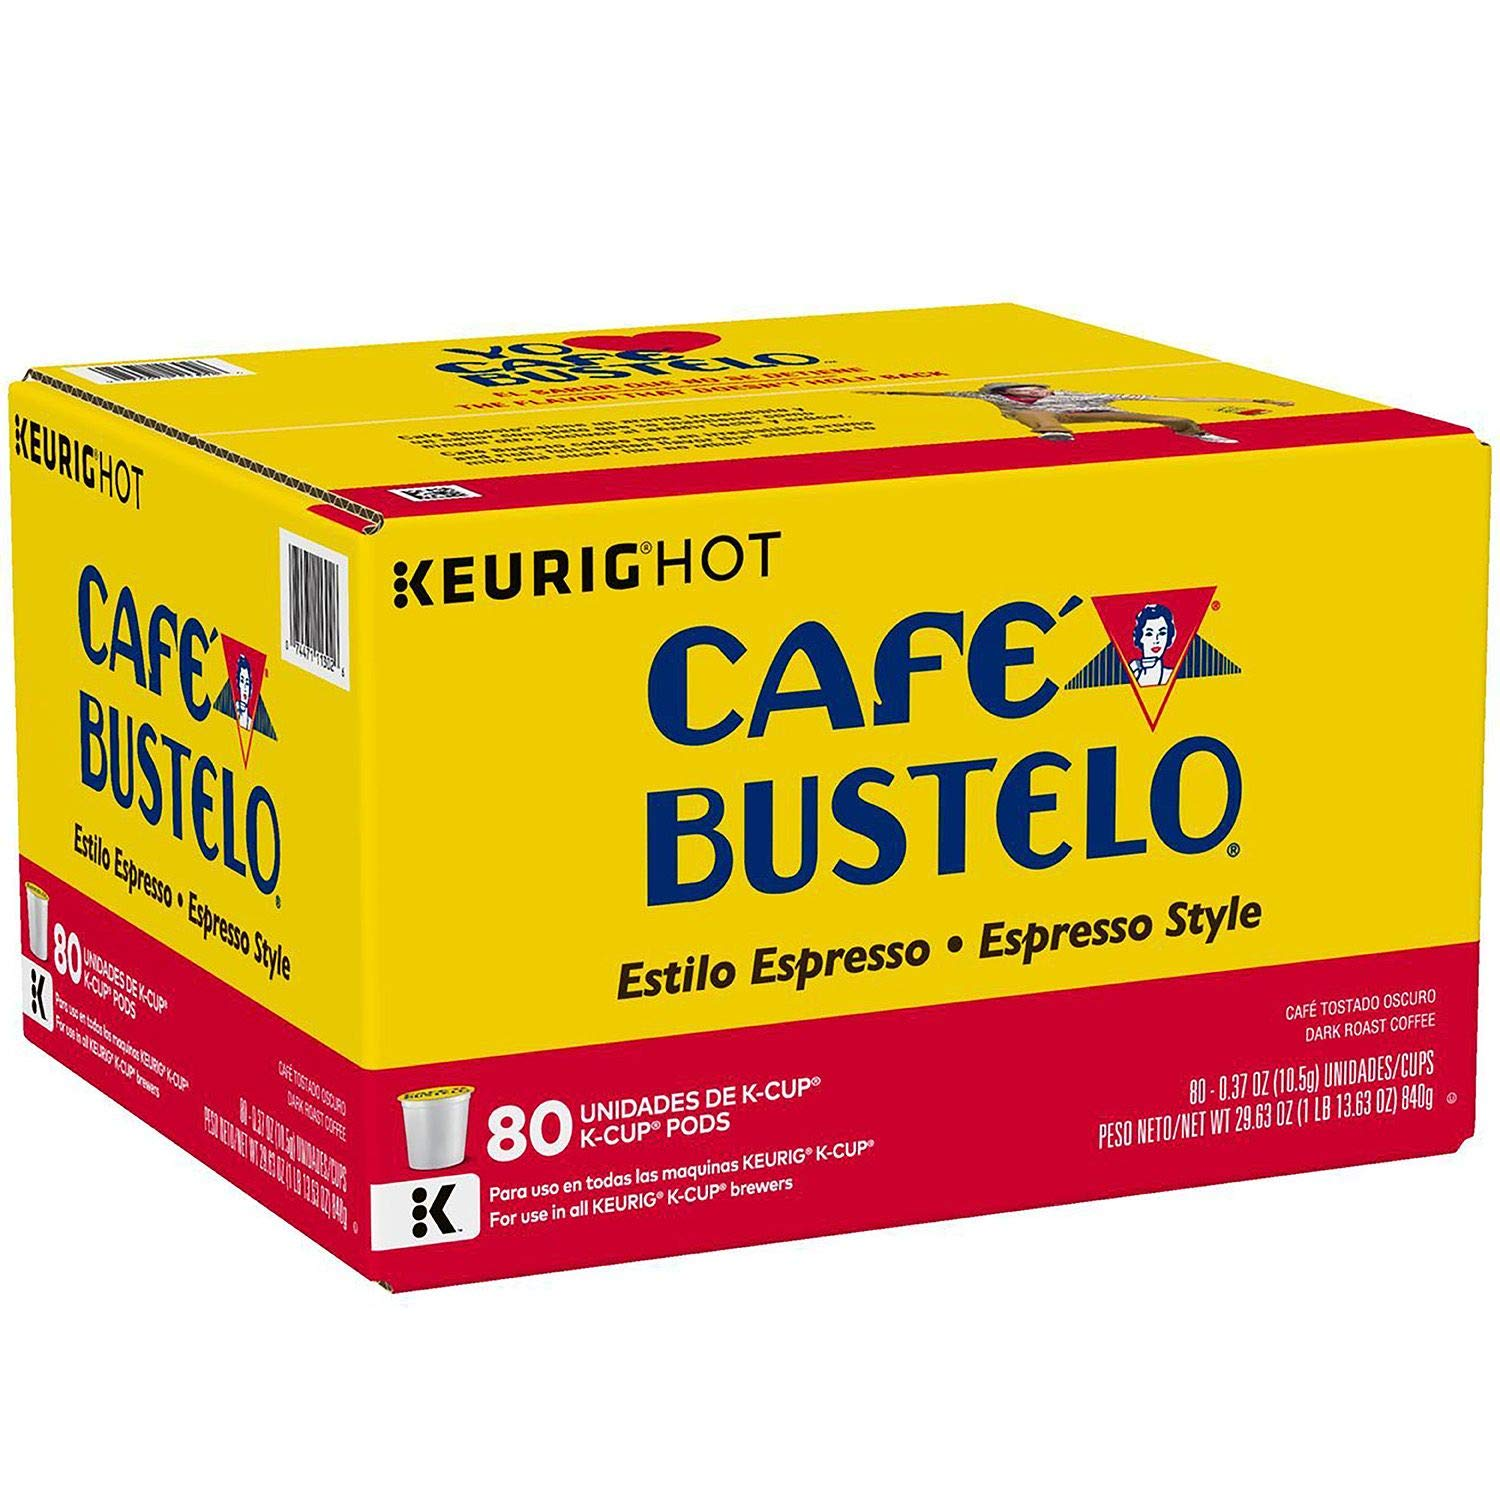 Cafà Bustelo Espresso Style K-Cup (80 ct.) (Pack of 2): Amazon.com: Grocery & Gourmet Food